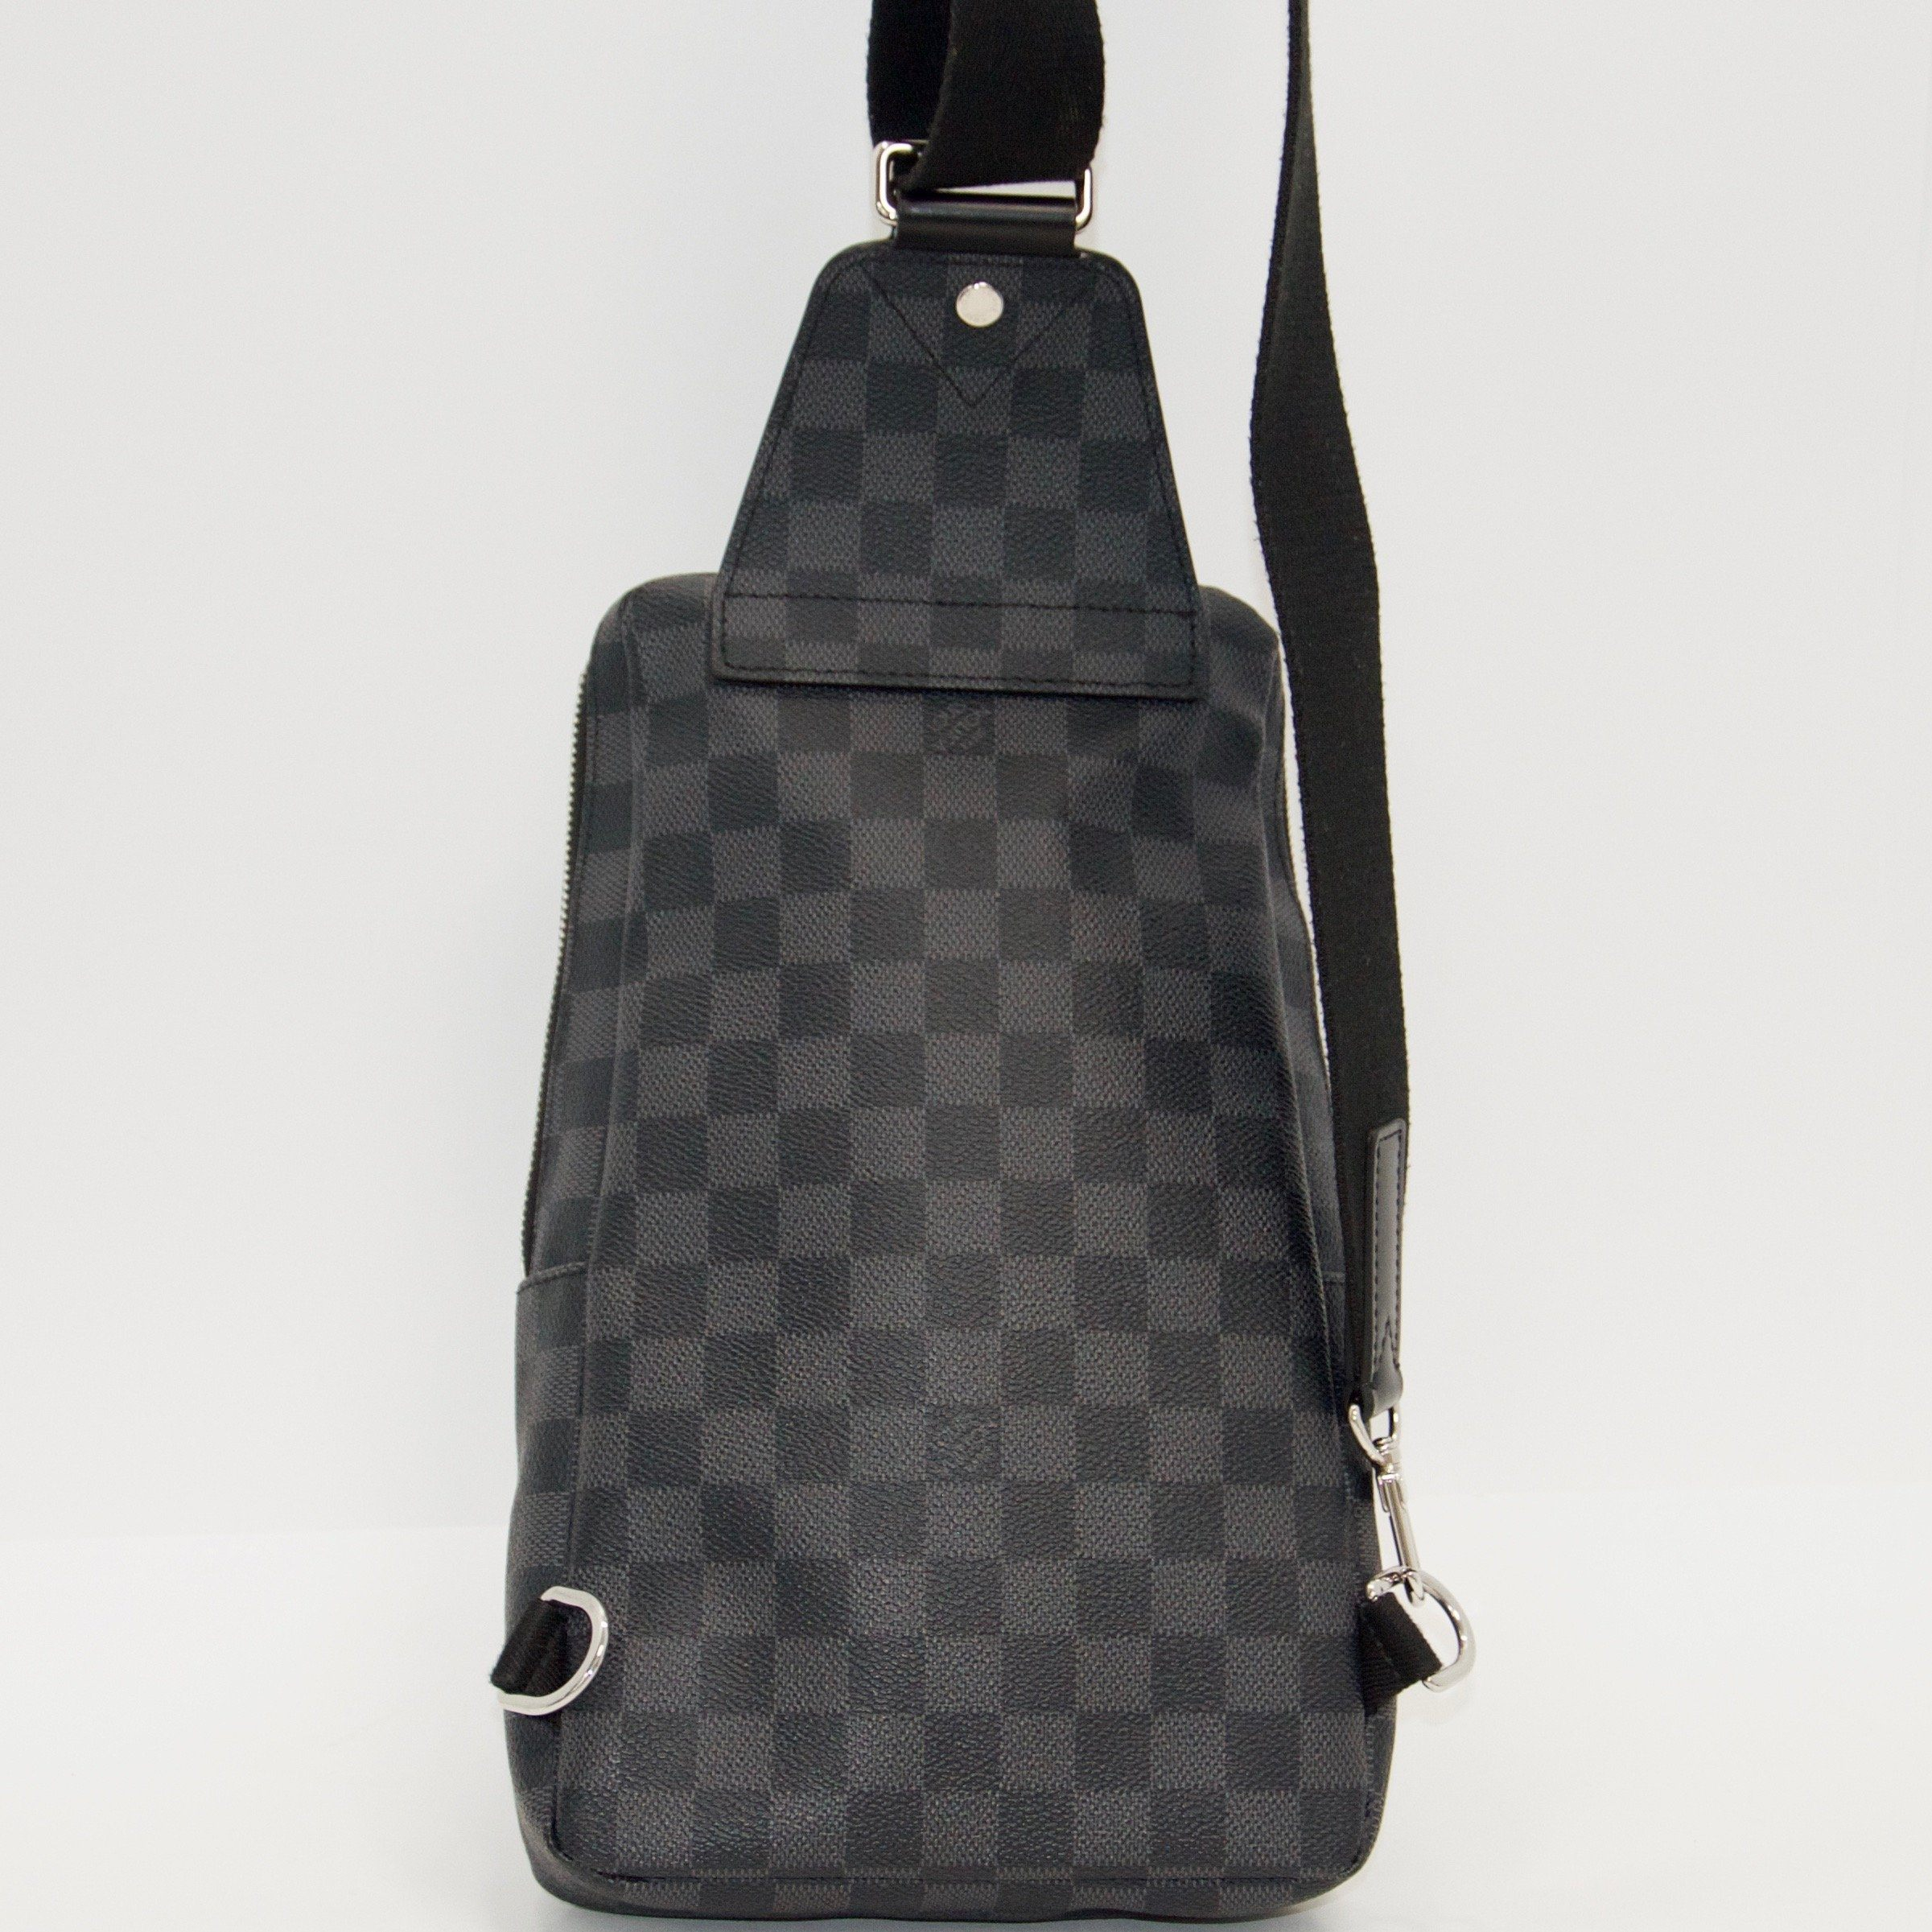 8f458a4c707 Louis vuitton damier graphite avenue sling bag oliver jewellery jpg  2401x2401 Louis vuitton sling bag